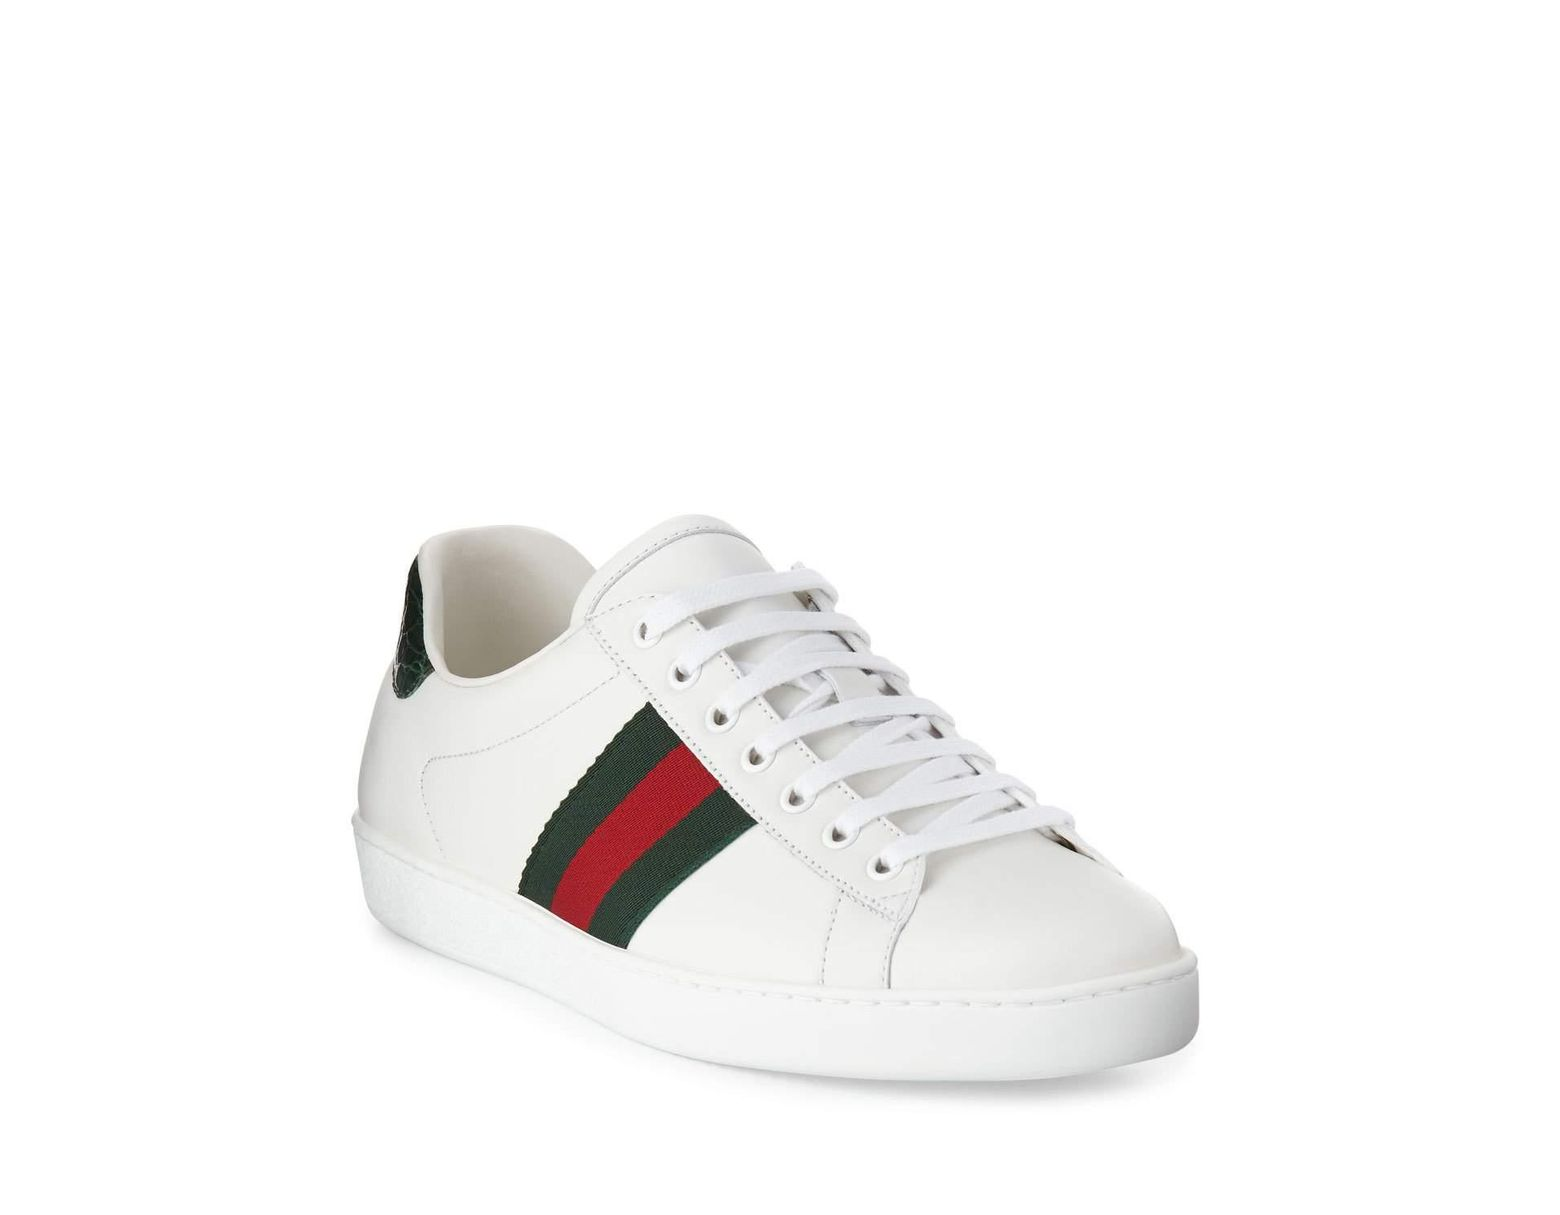 8705a311dee Lyst - Gucci Men s New Ace Leather Low-top Sneakers in White for Men - Save  5%